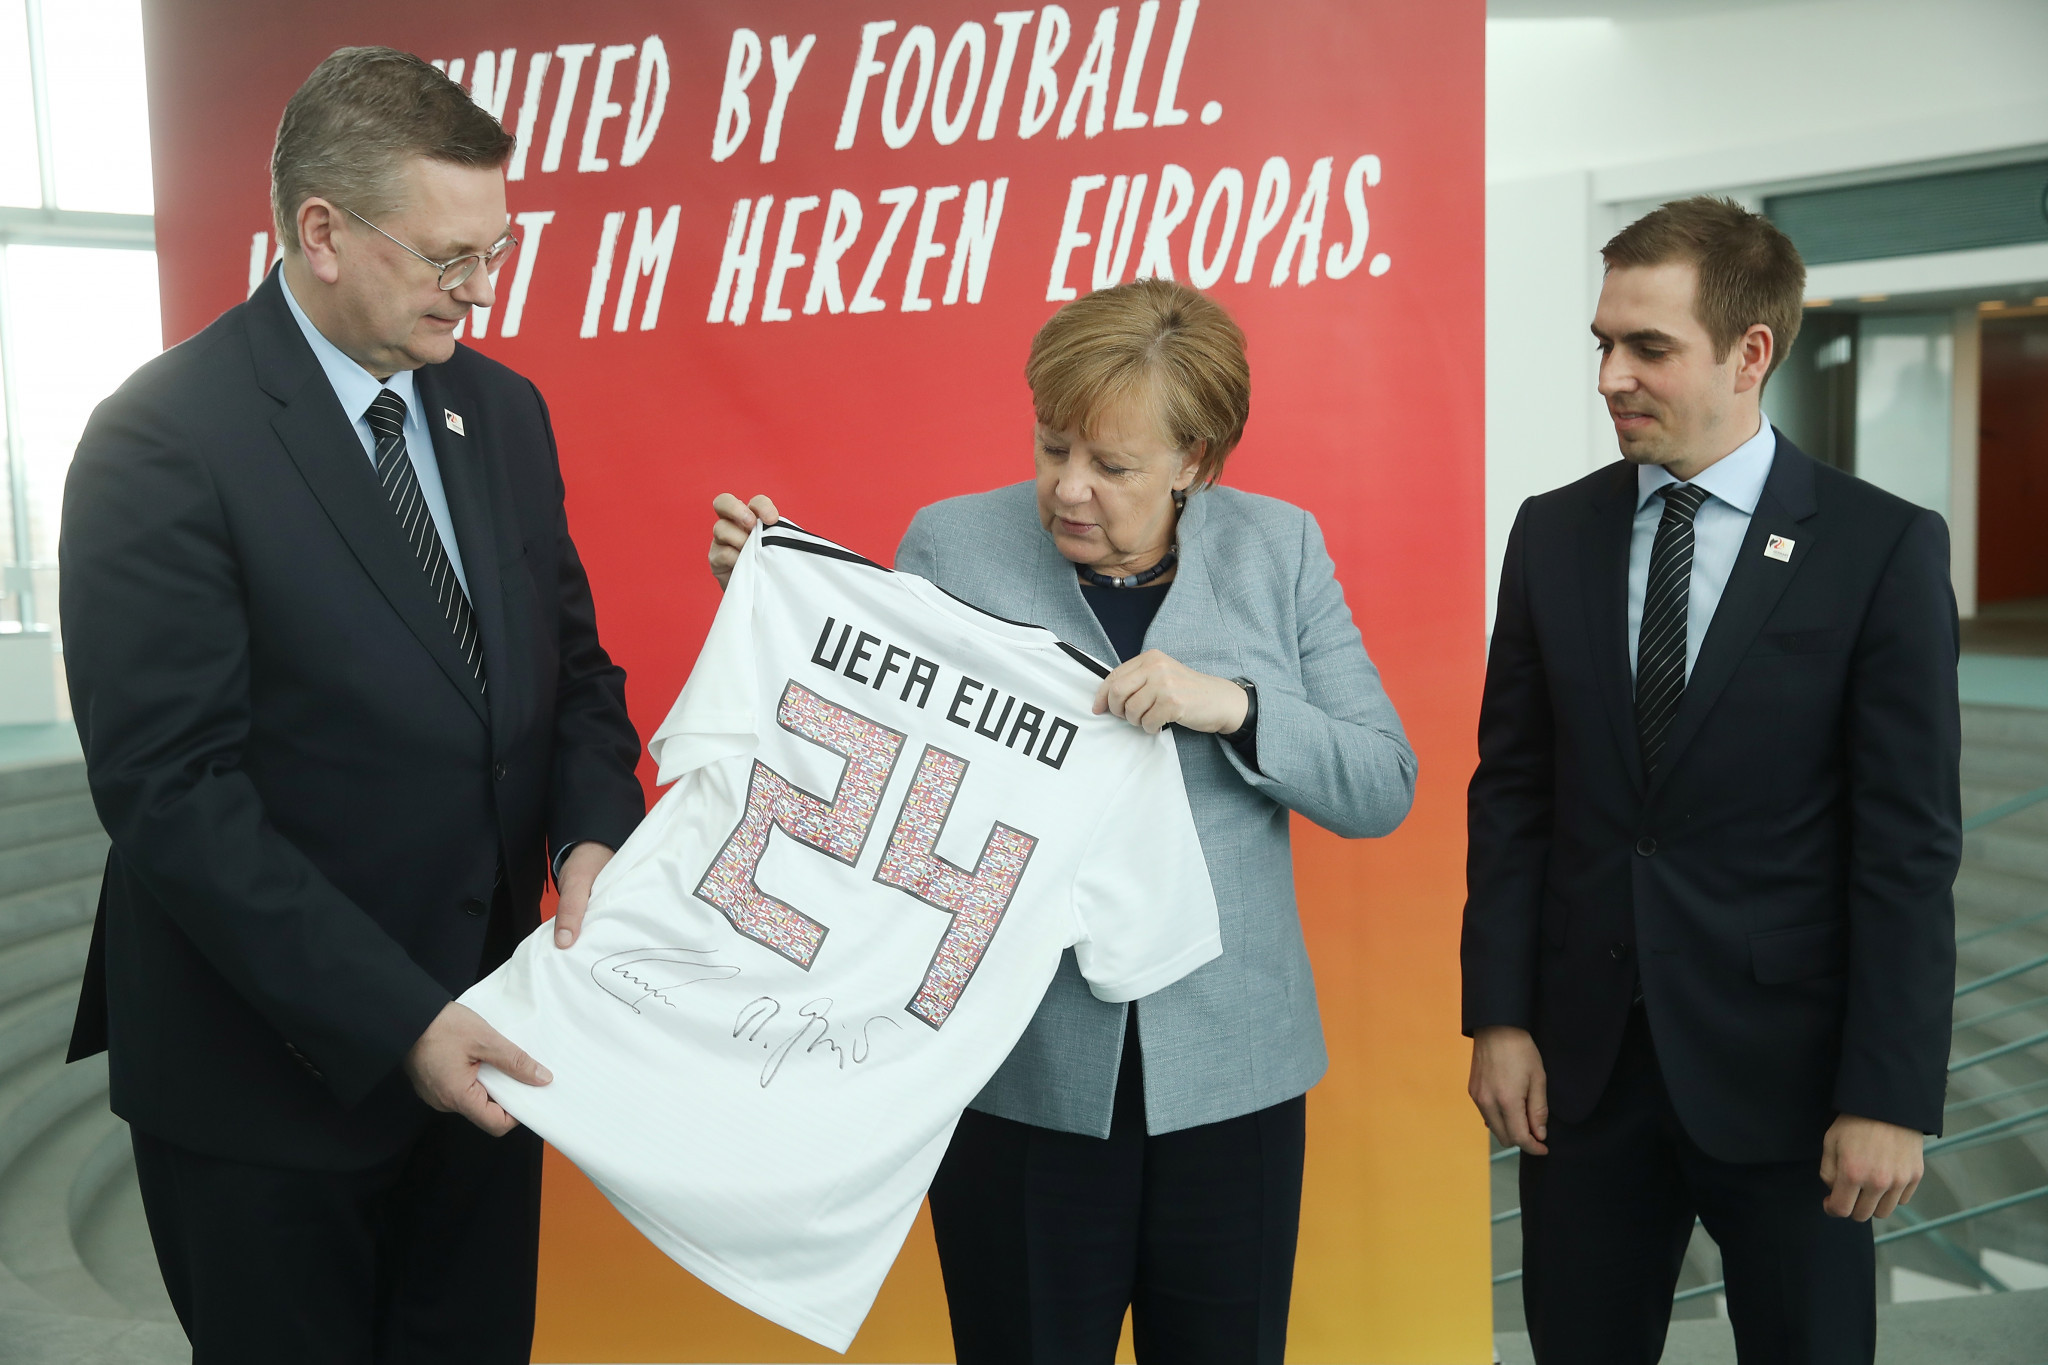 Commercial partnerships of DFB praised by Germany's bid for Euro 2024